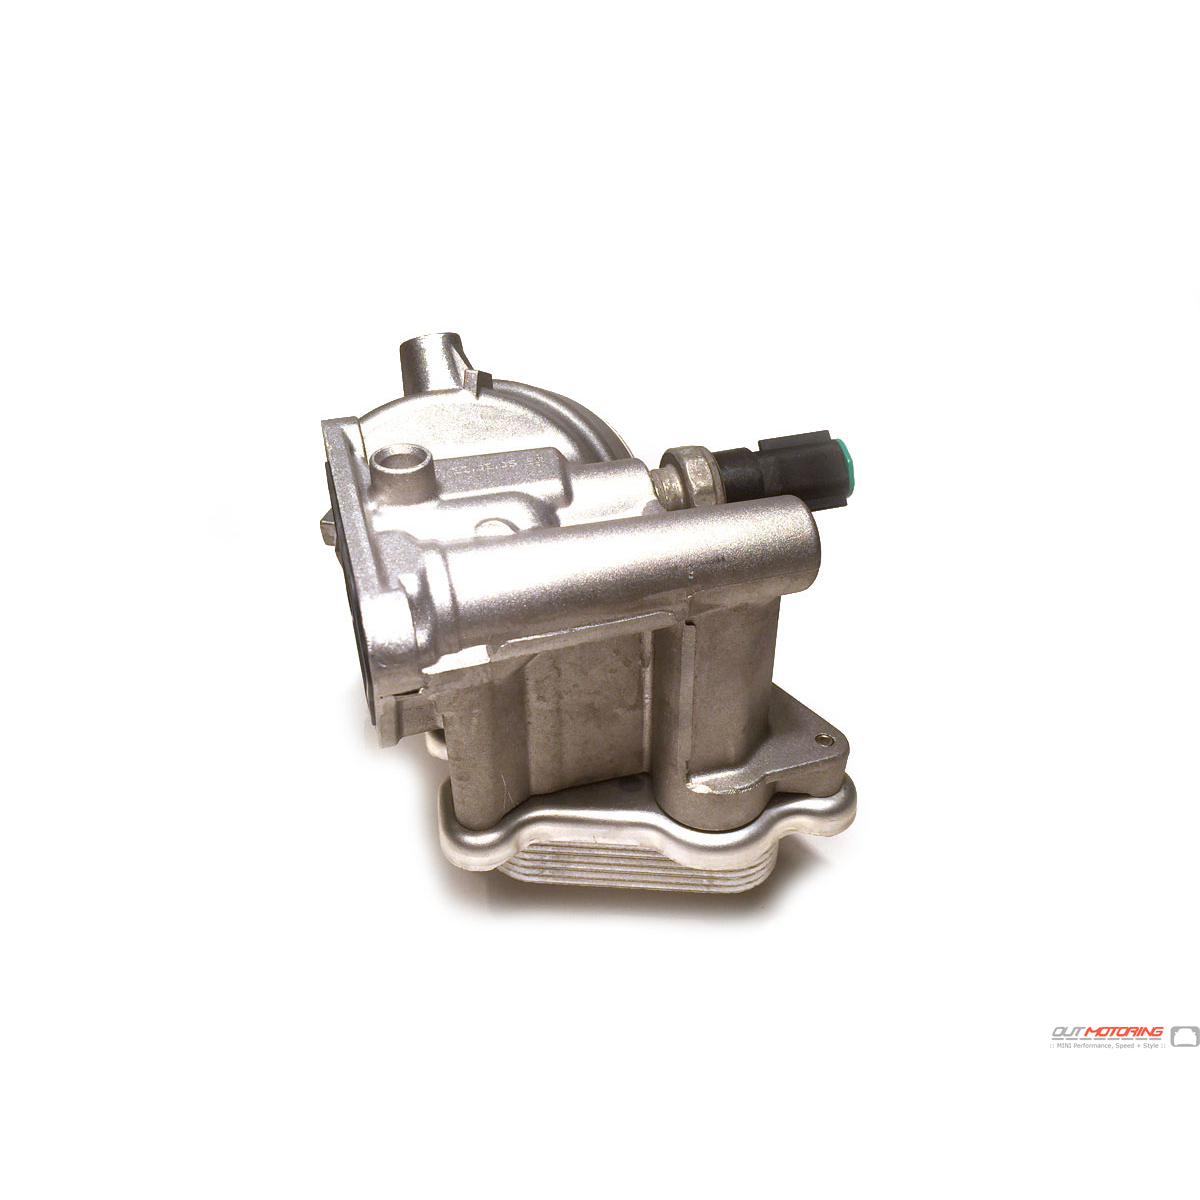 MINI Cooper Oil Filter Housing: Manual Transmission With